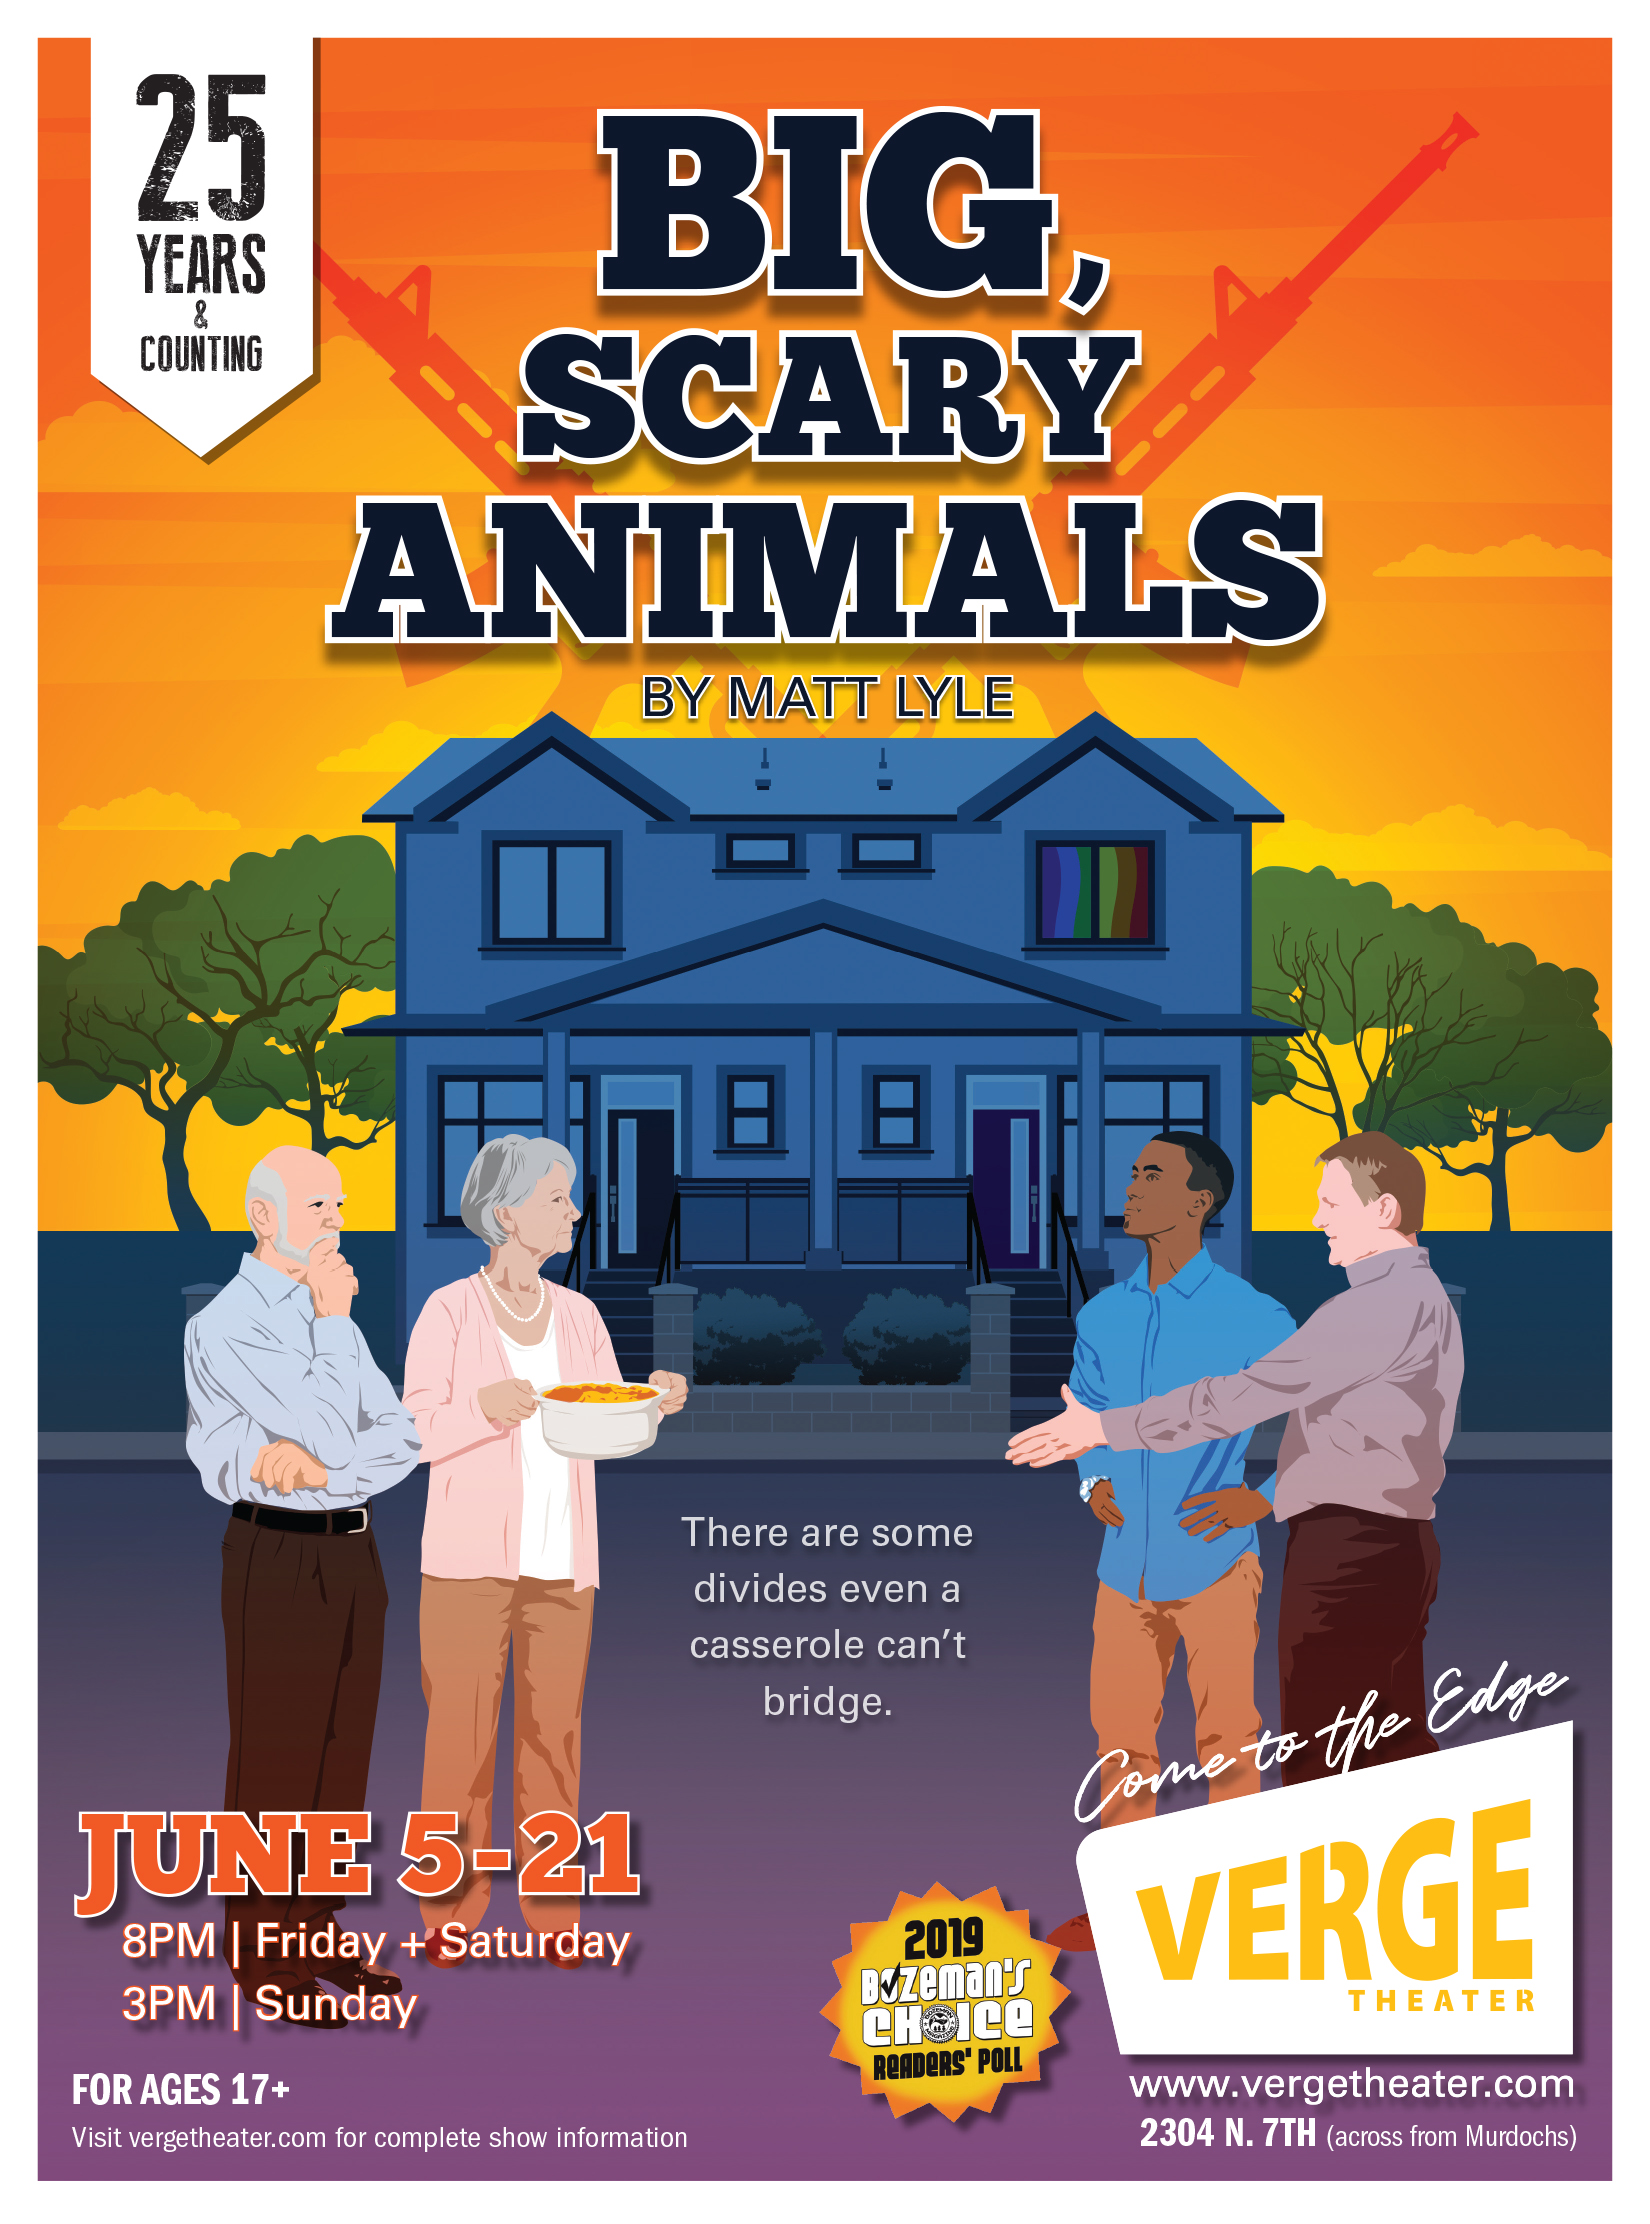 Big Scary Animals Poster 11x17 for website.jpg